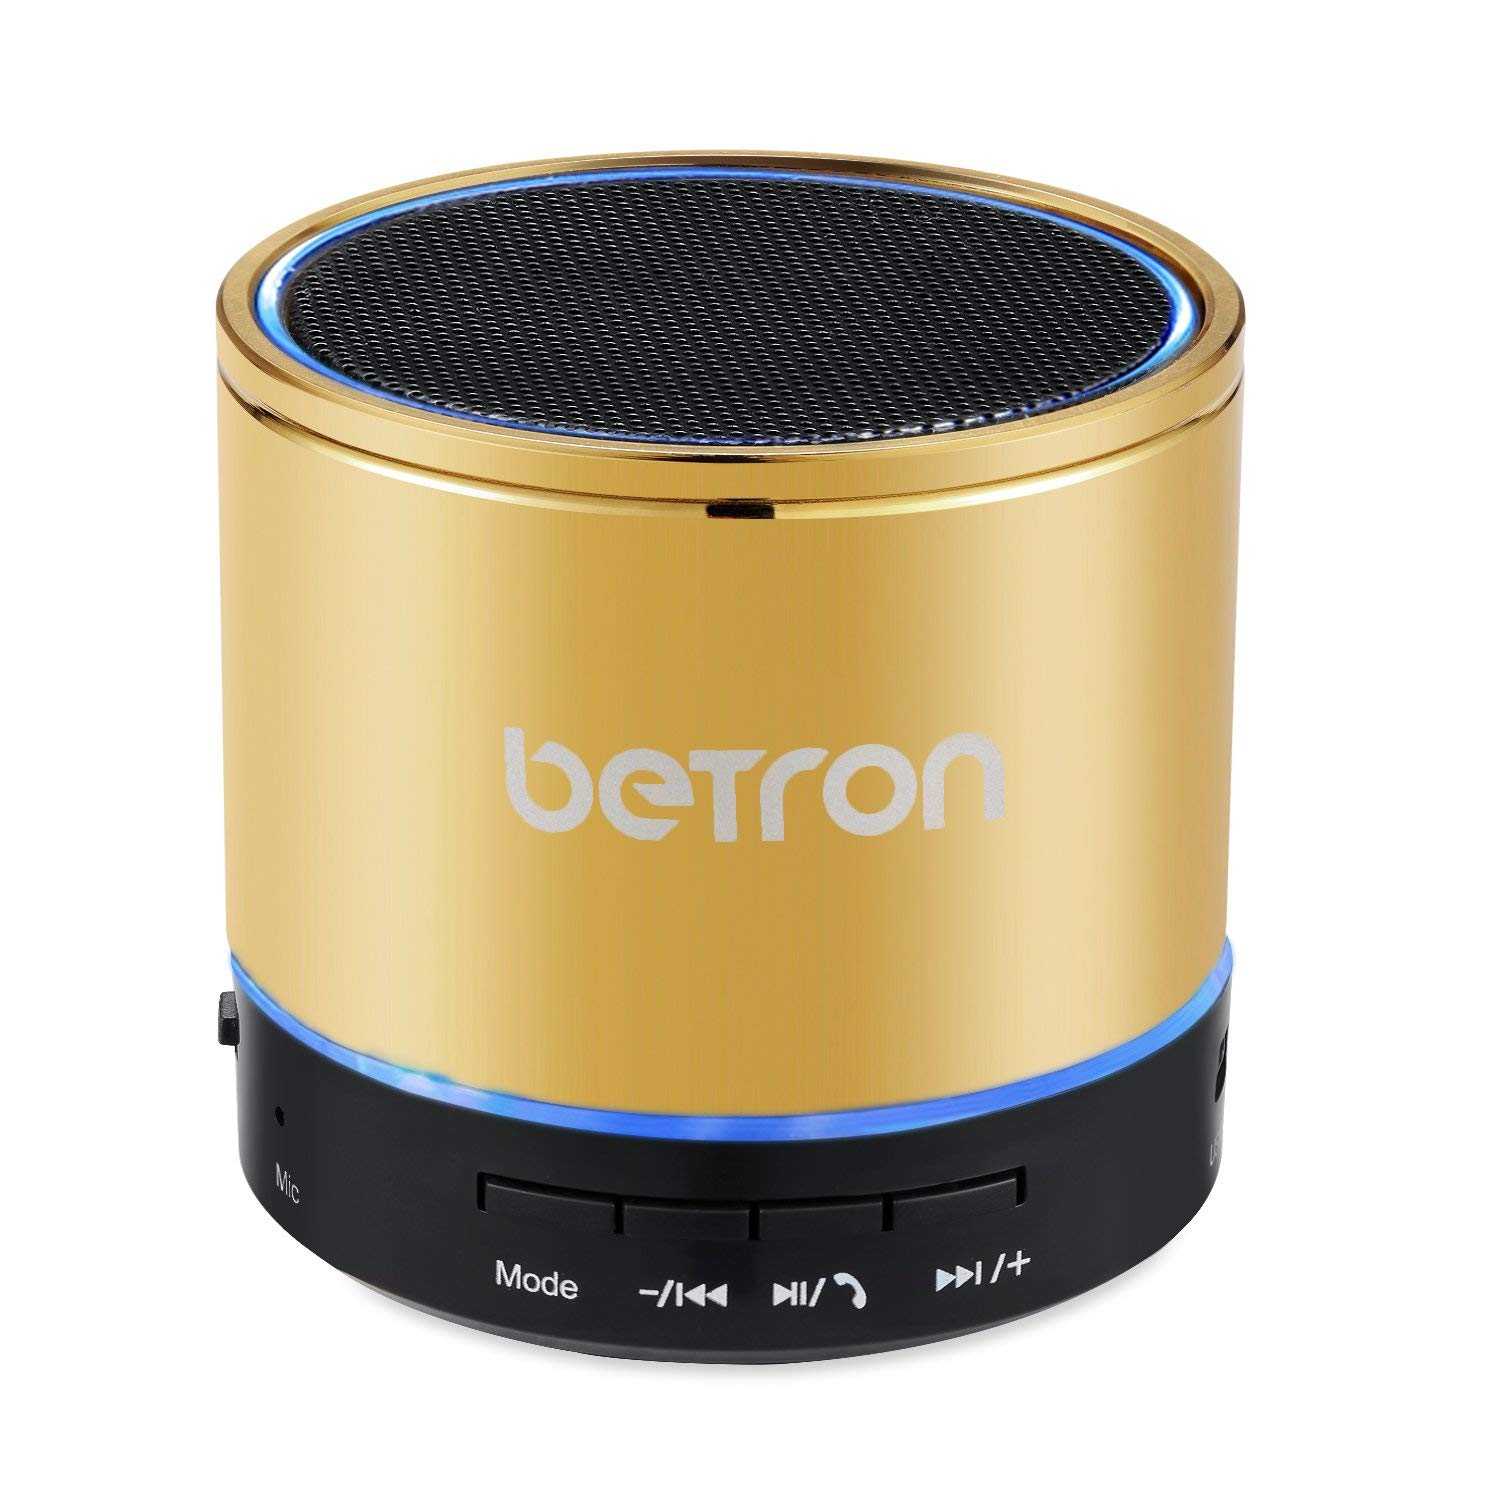 Betron KBS08 Wireless Portable Travel Bluetooth Speaker Gold